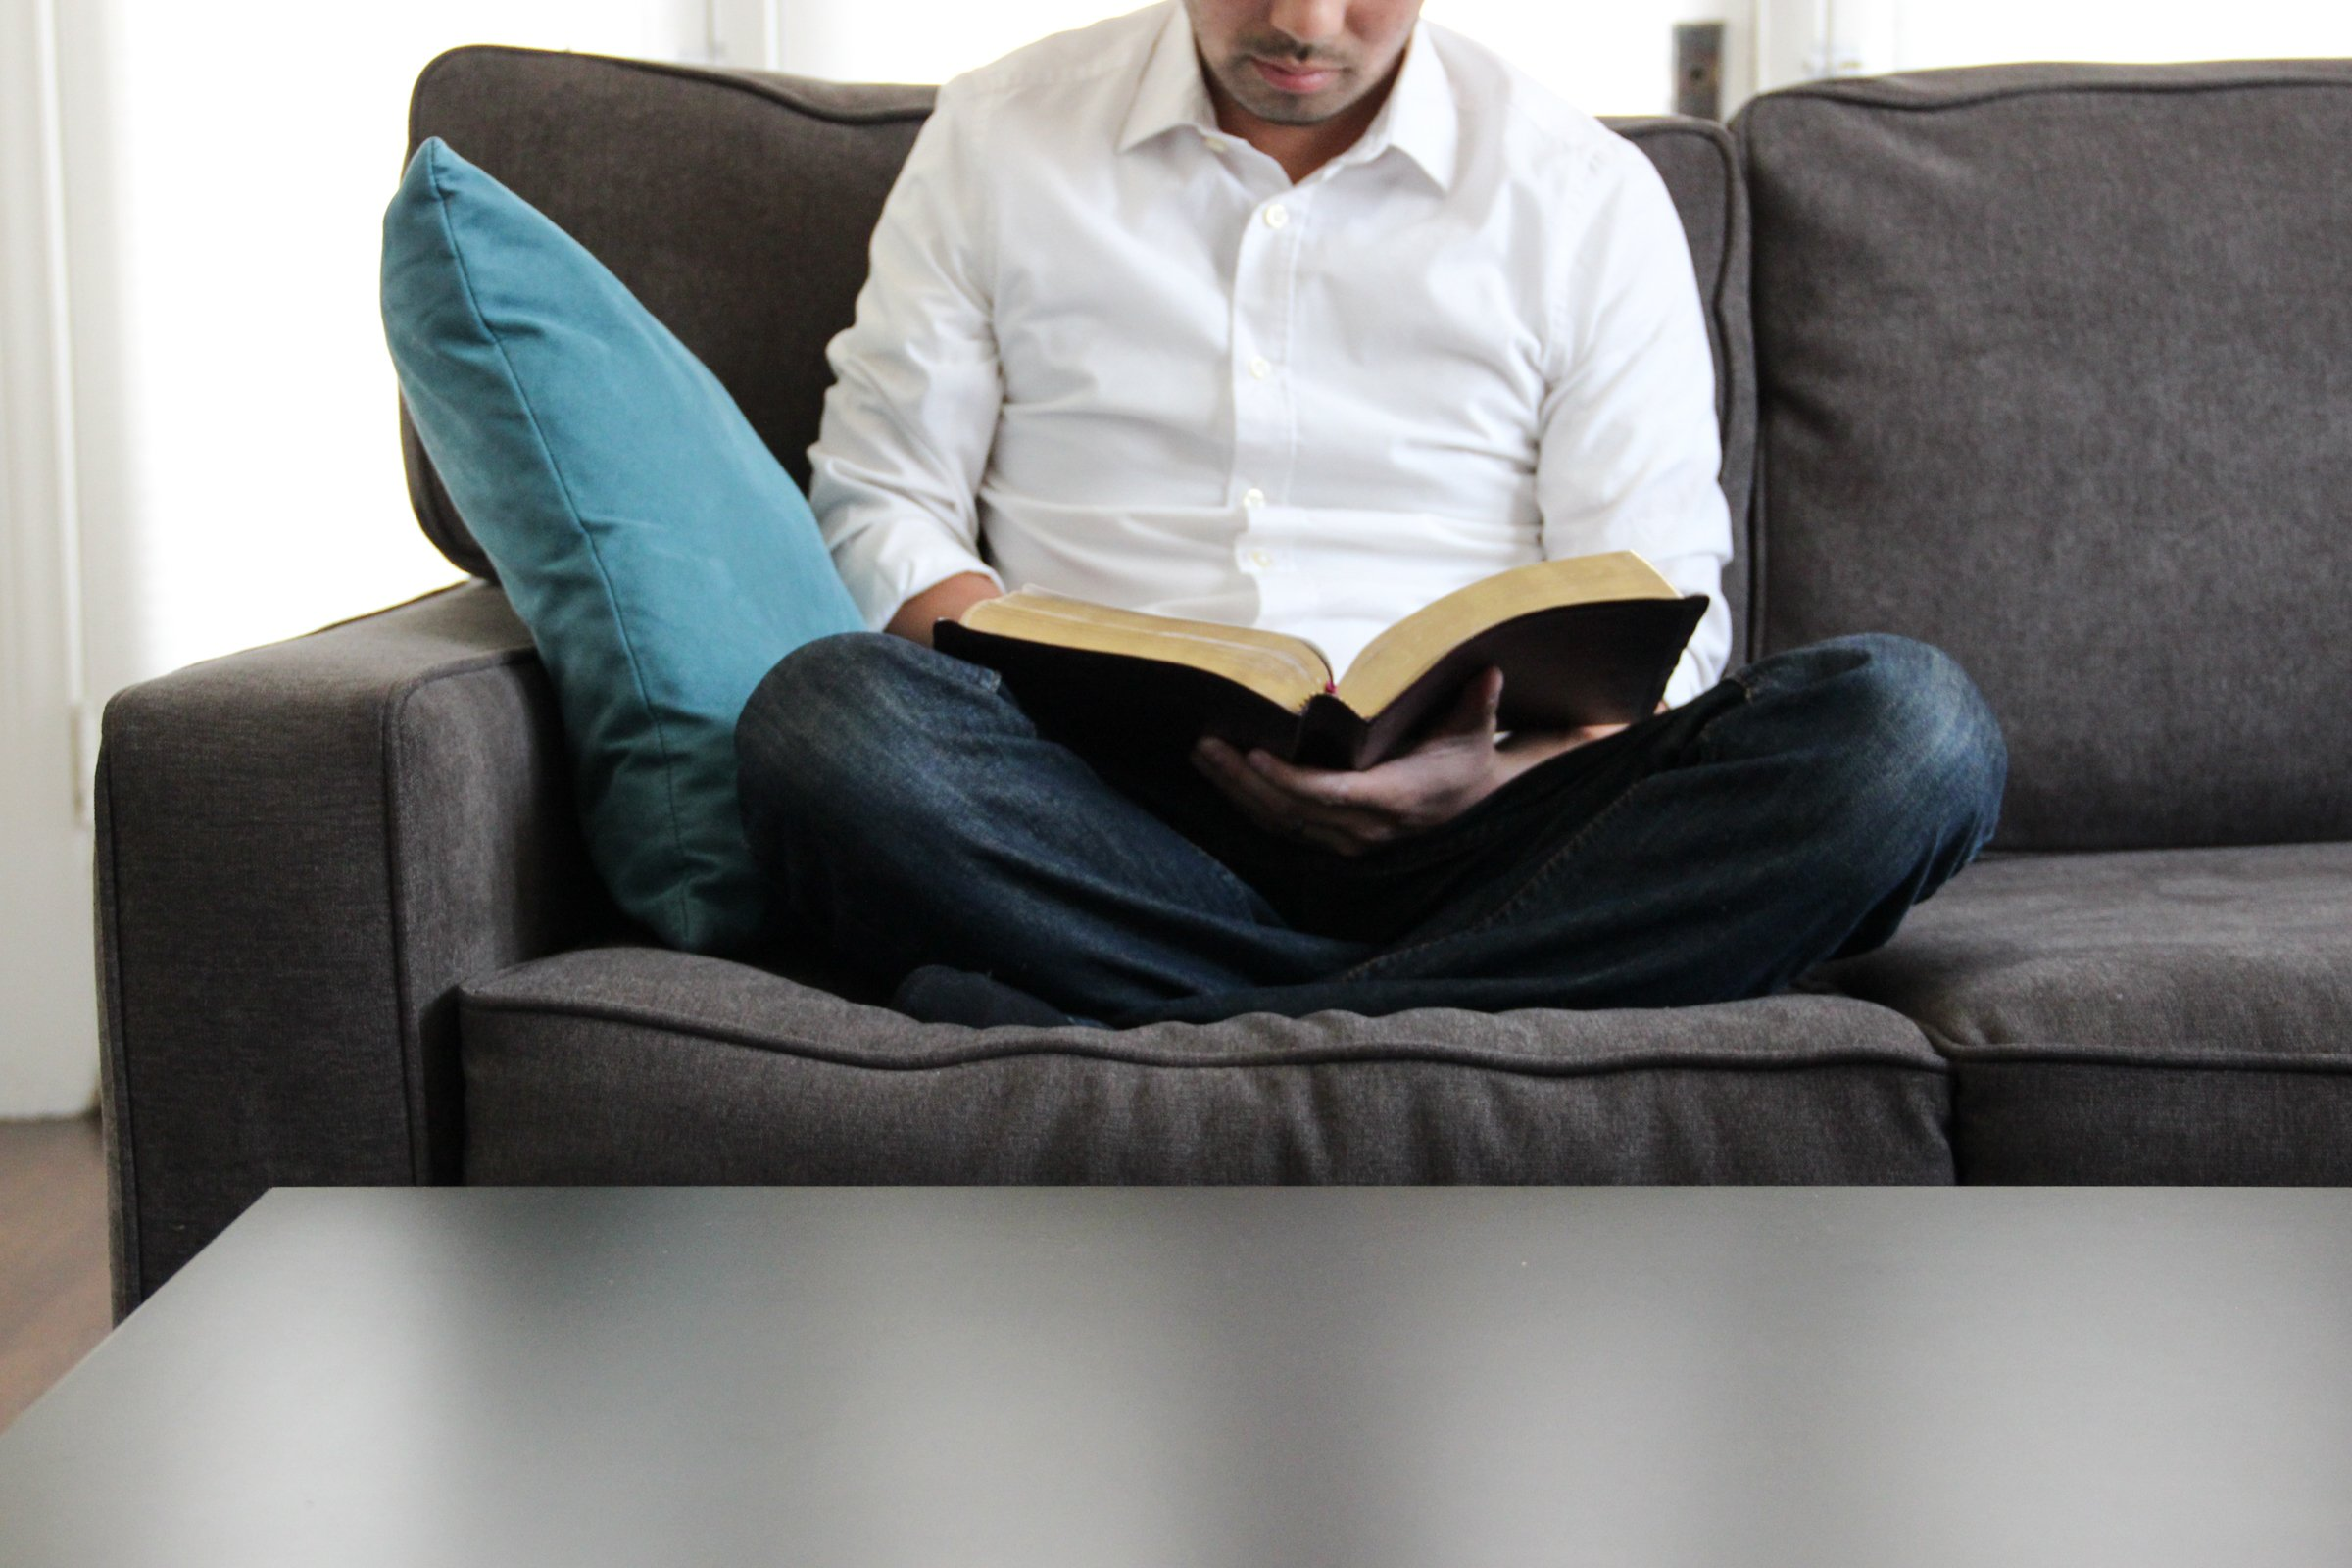 Free Stock Photo of Man on Couch Reading Bible